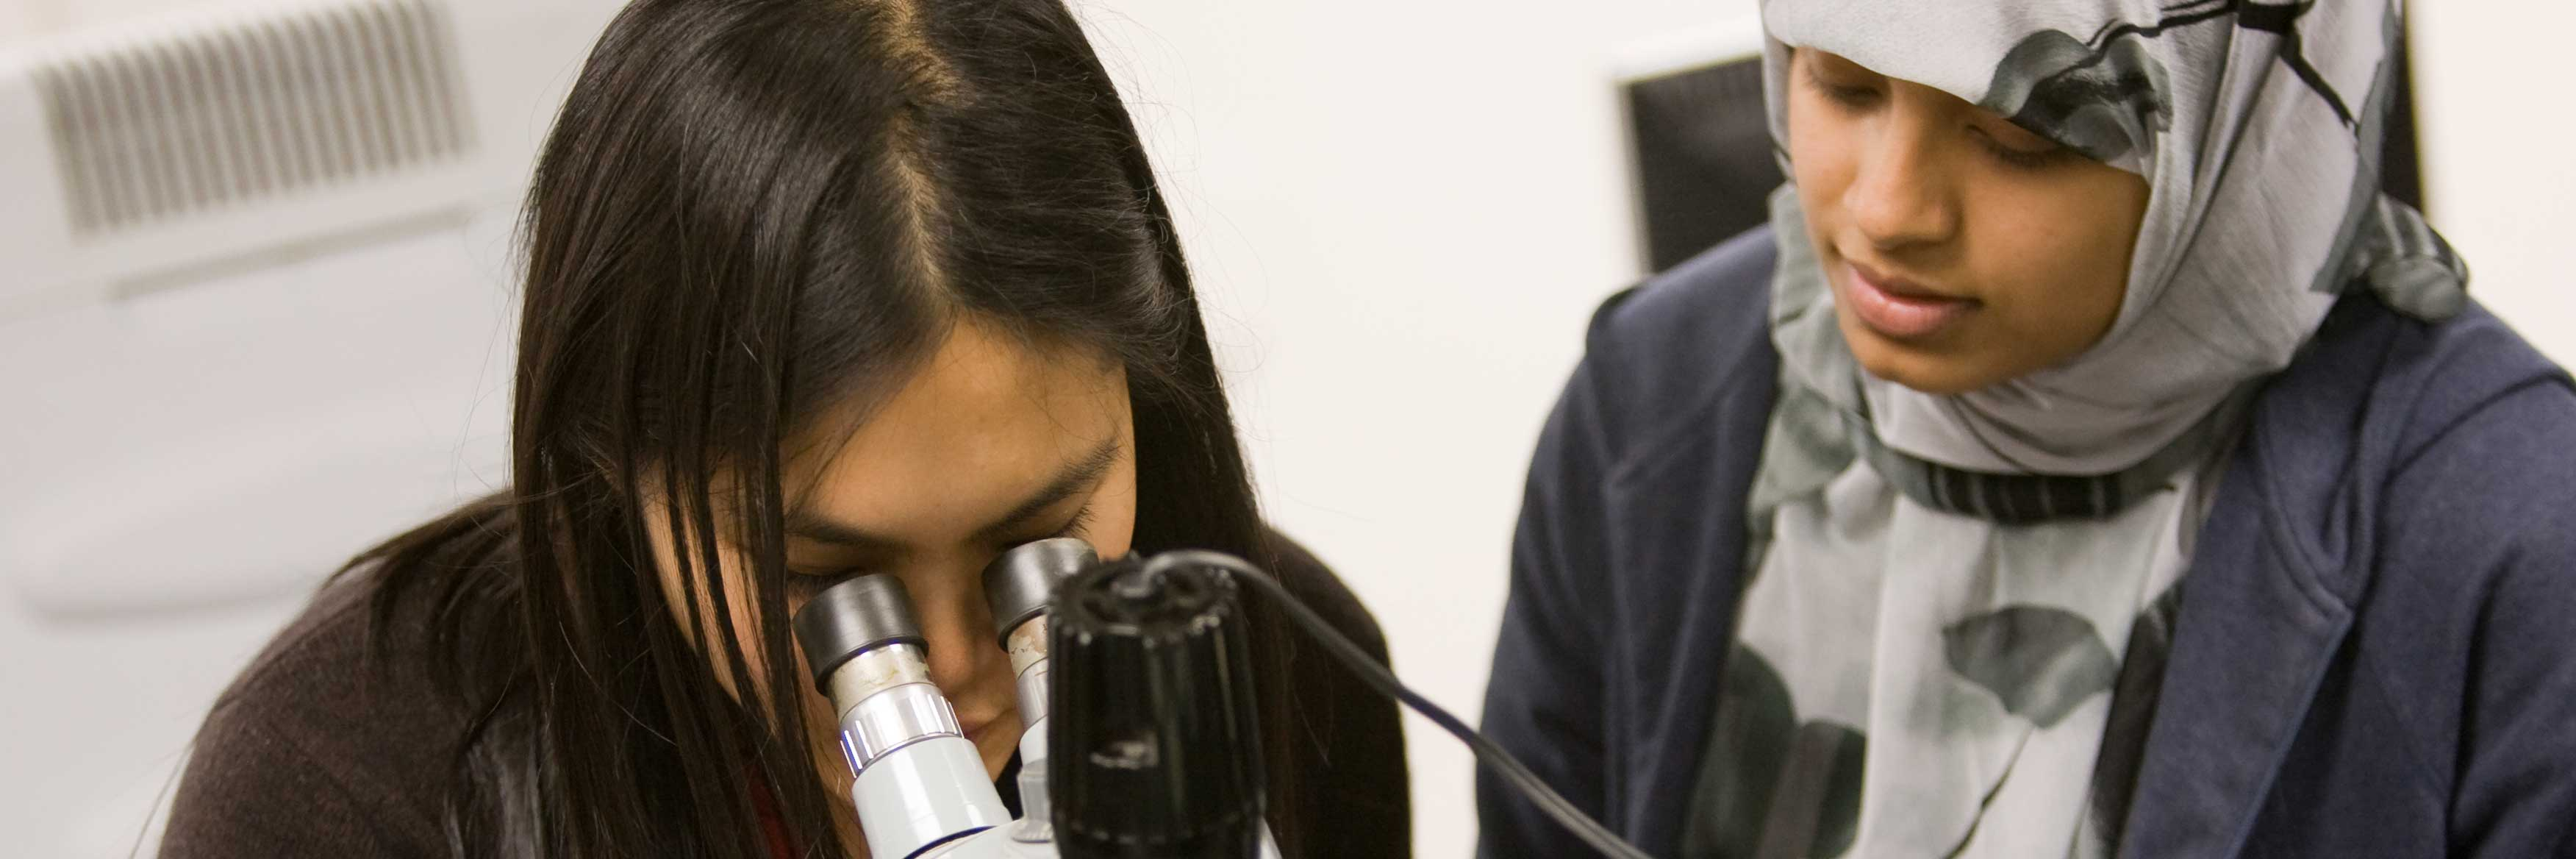 Two female students using a microscope